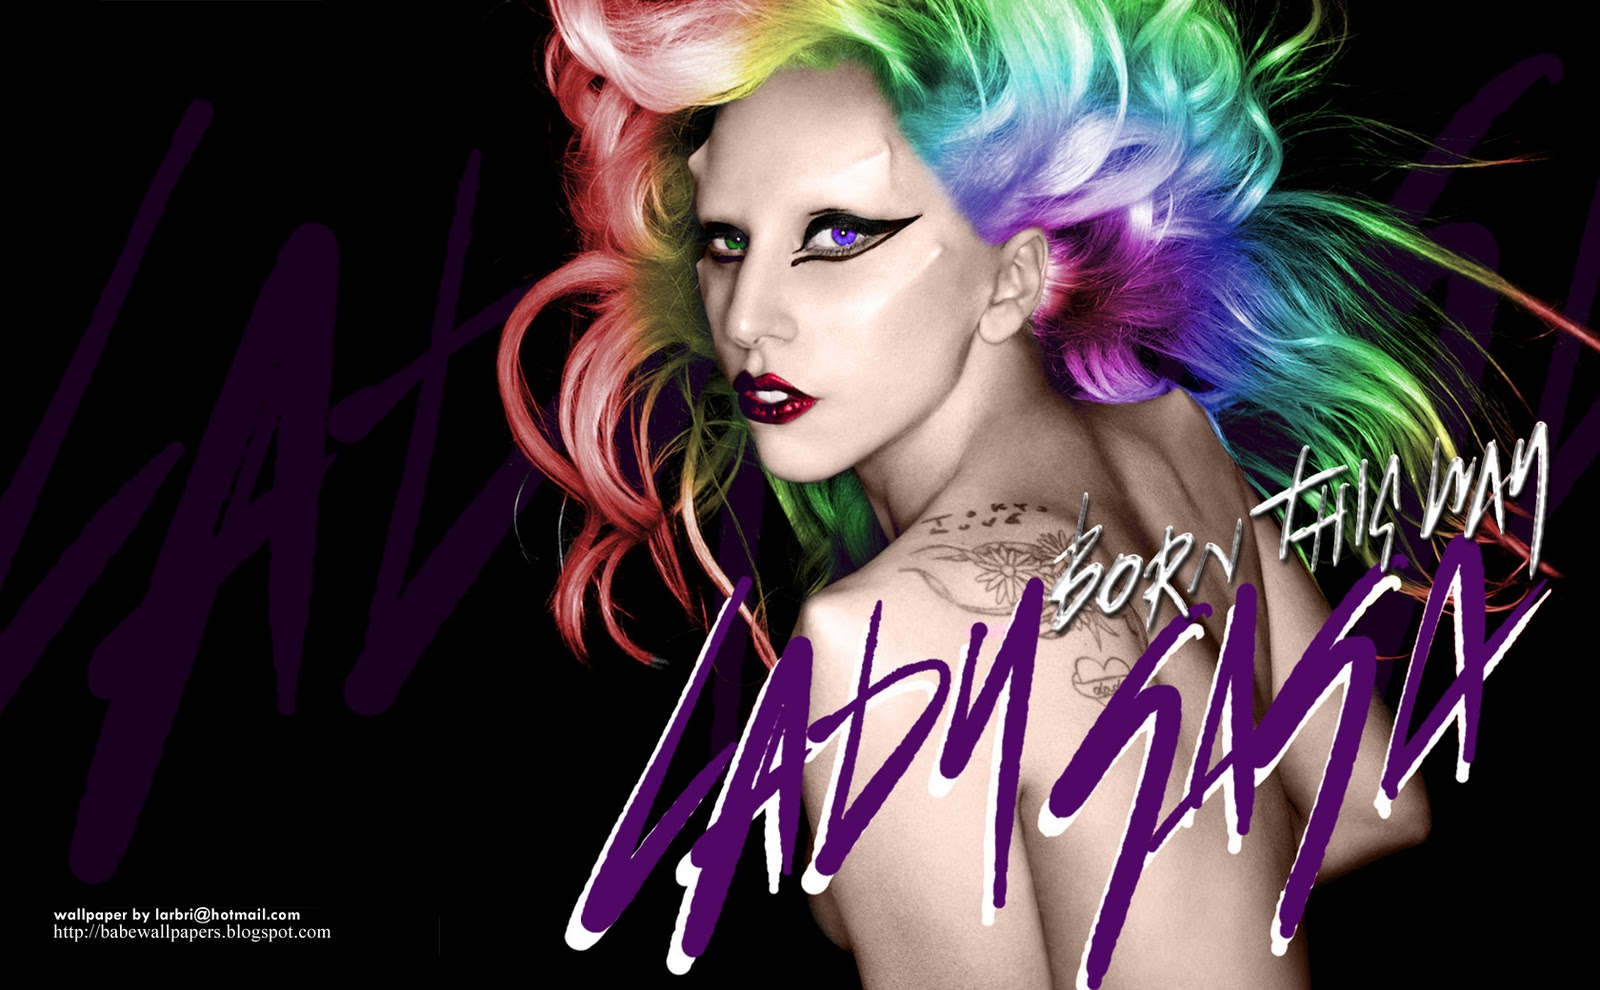 lady gaga born this way wall 003c%255B1%255D Lady GaGa se da el batacazo con Judas